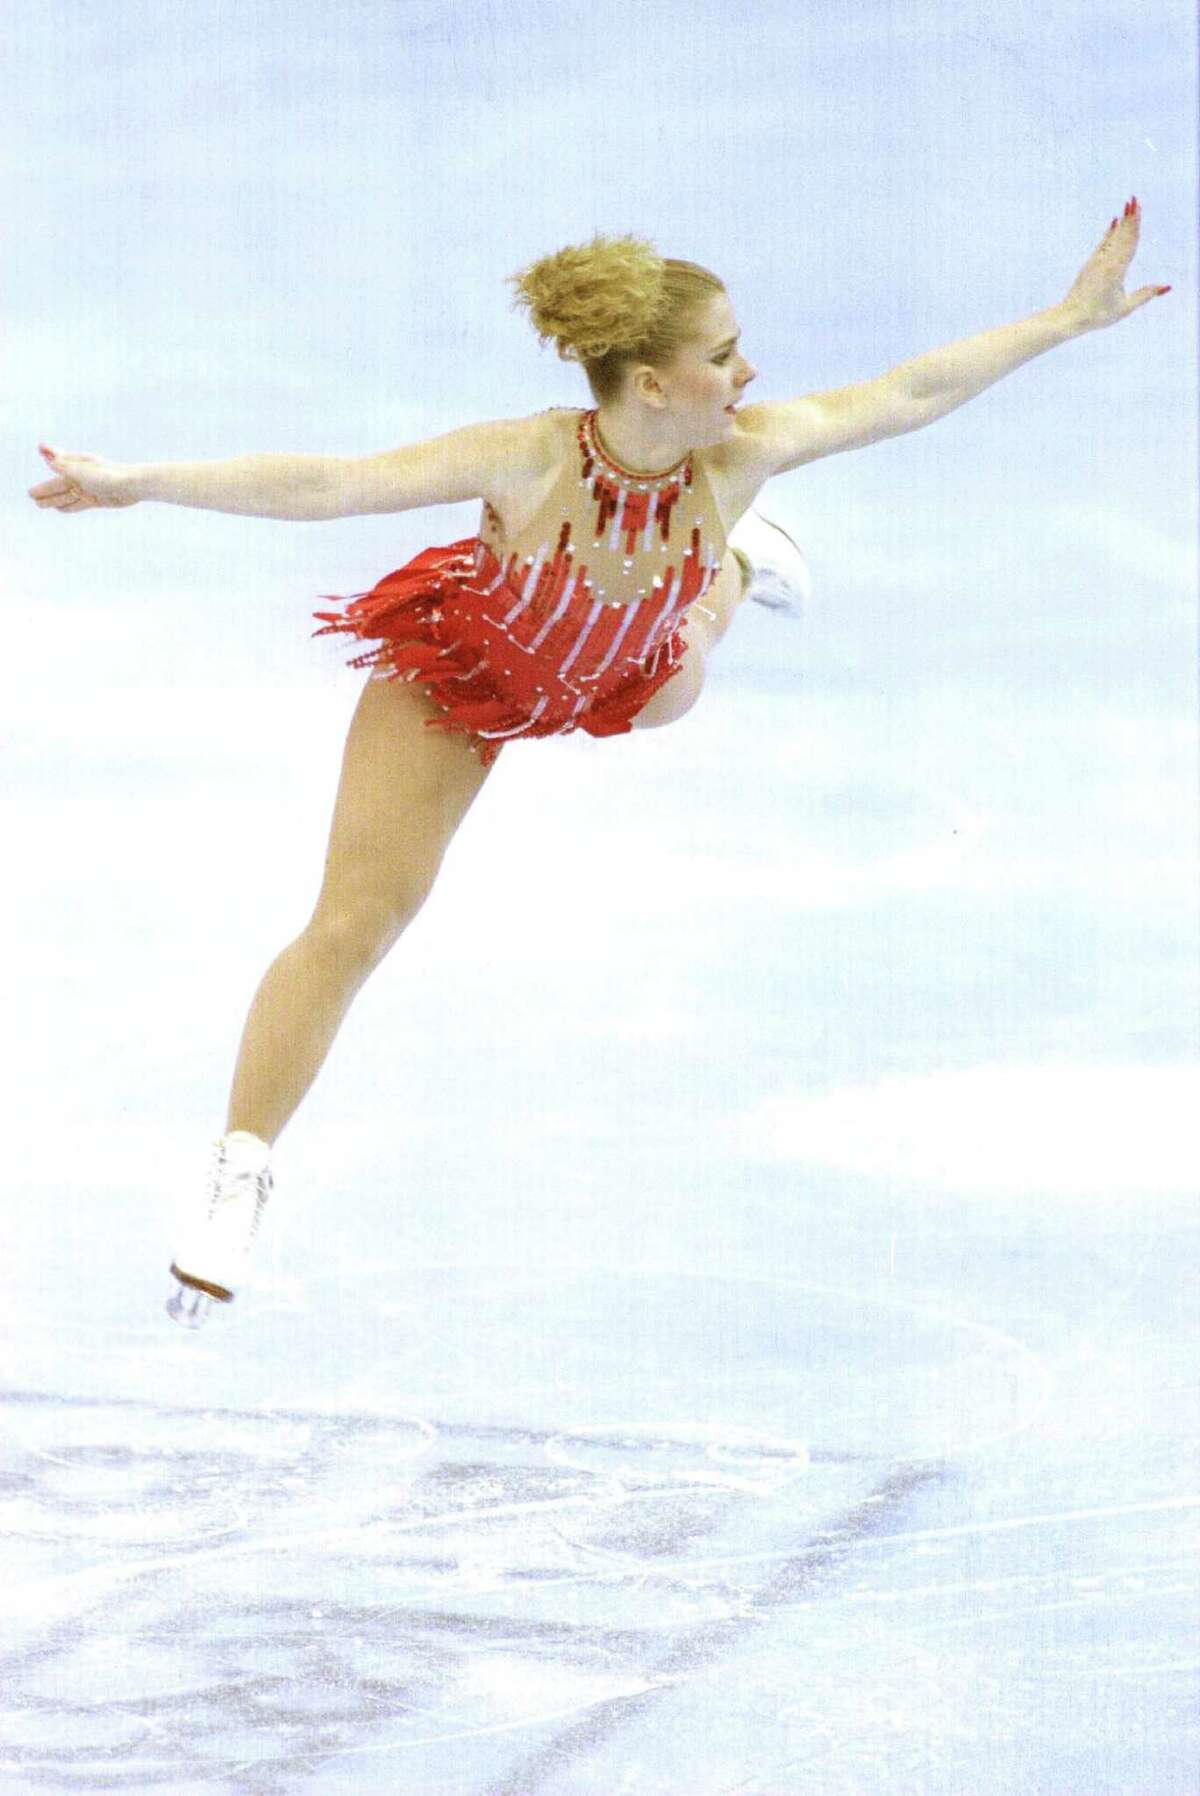 On Jan. 7, 1994, Harding was competing in the national figure skating championships in Detroit. It was a day after the attack on Kerrigan. Harding won, but her title was later stripped.